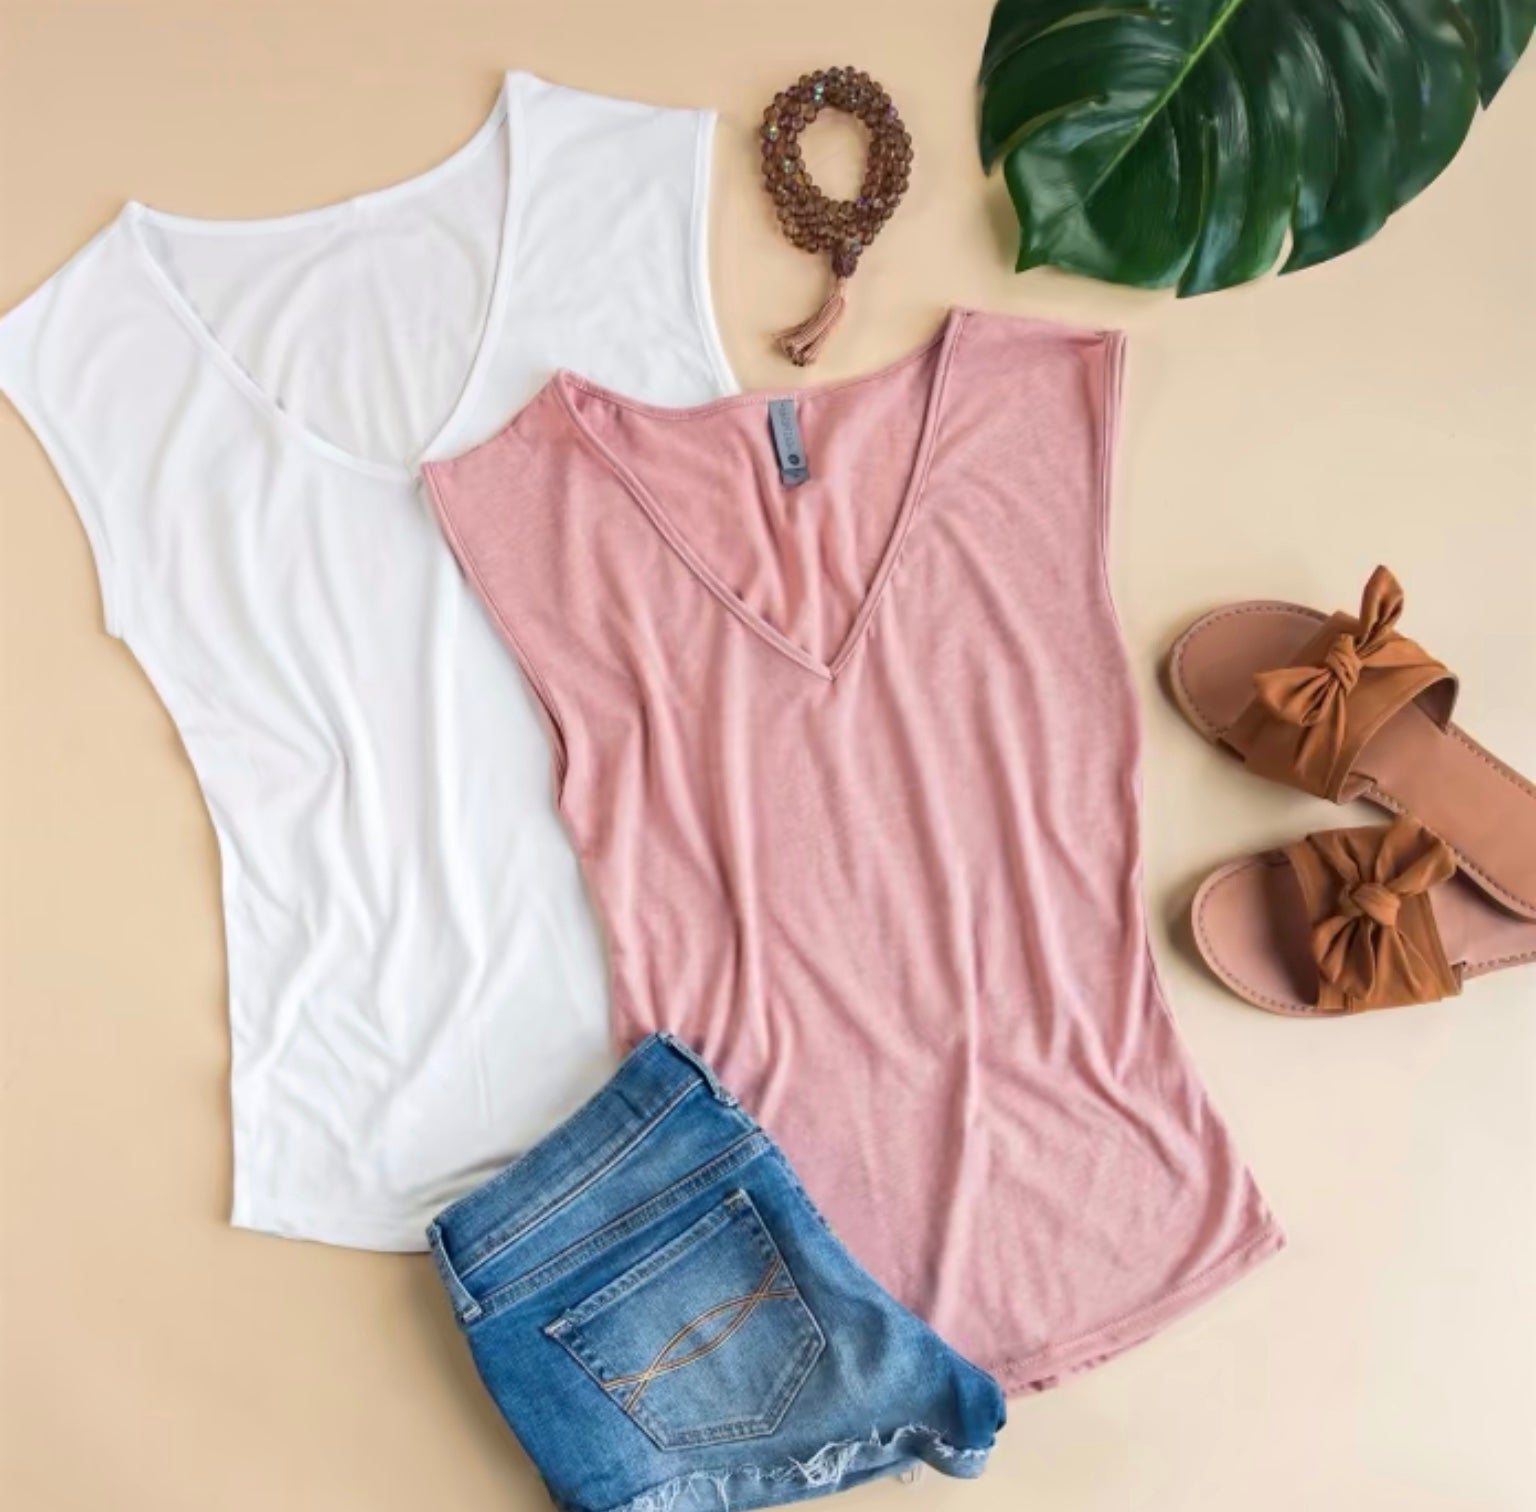 Sleeveless Layering Tee